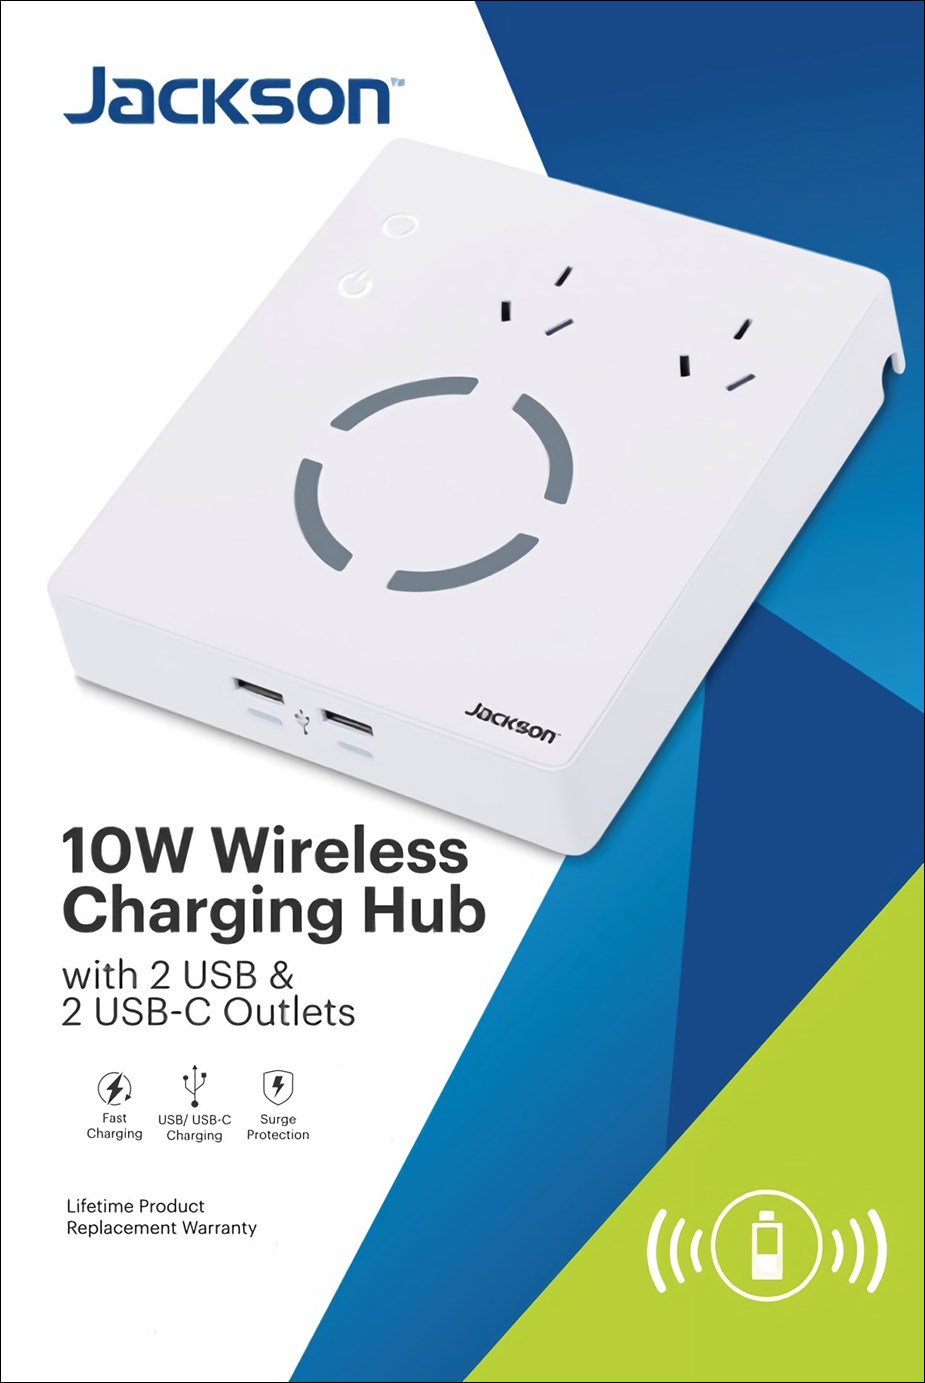 Jackson 2-Outlet PowerHub with 4 USB Ports & 10W Wireless Charging - Overview 1